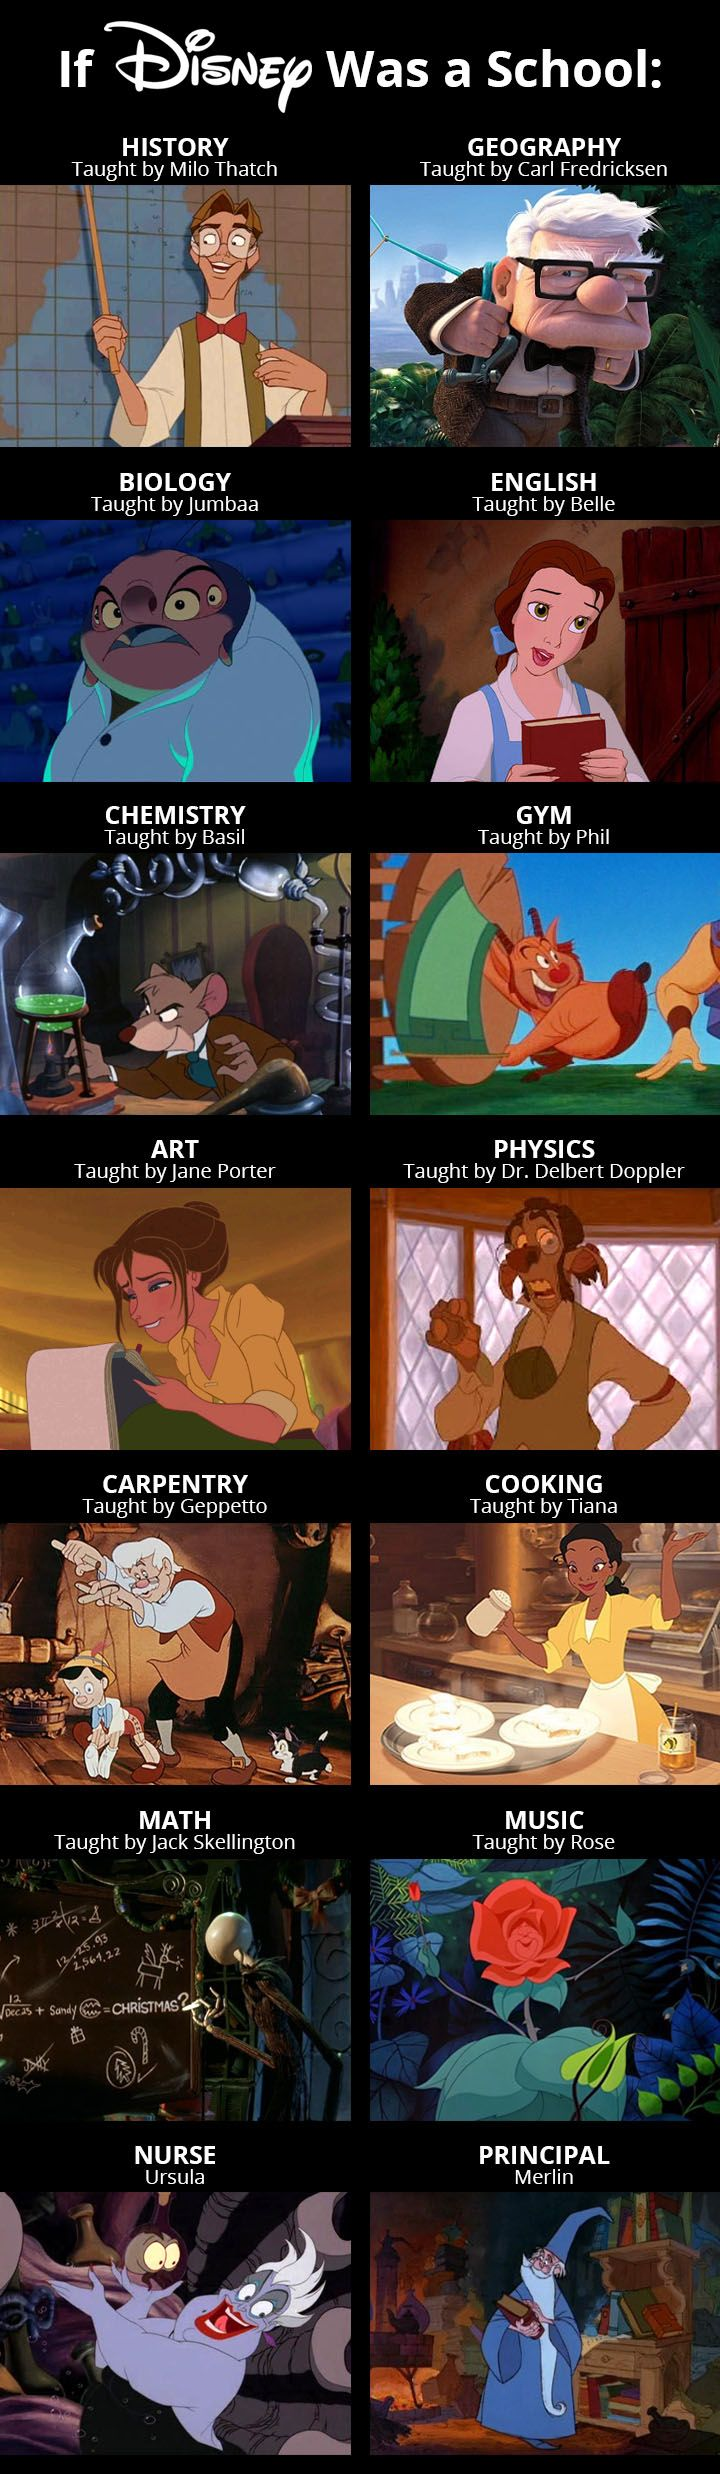 If Disney Was a School...I would totally go here!